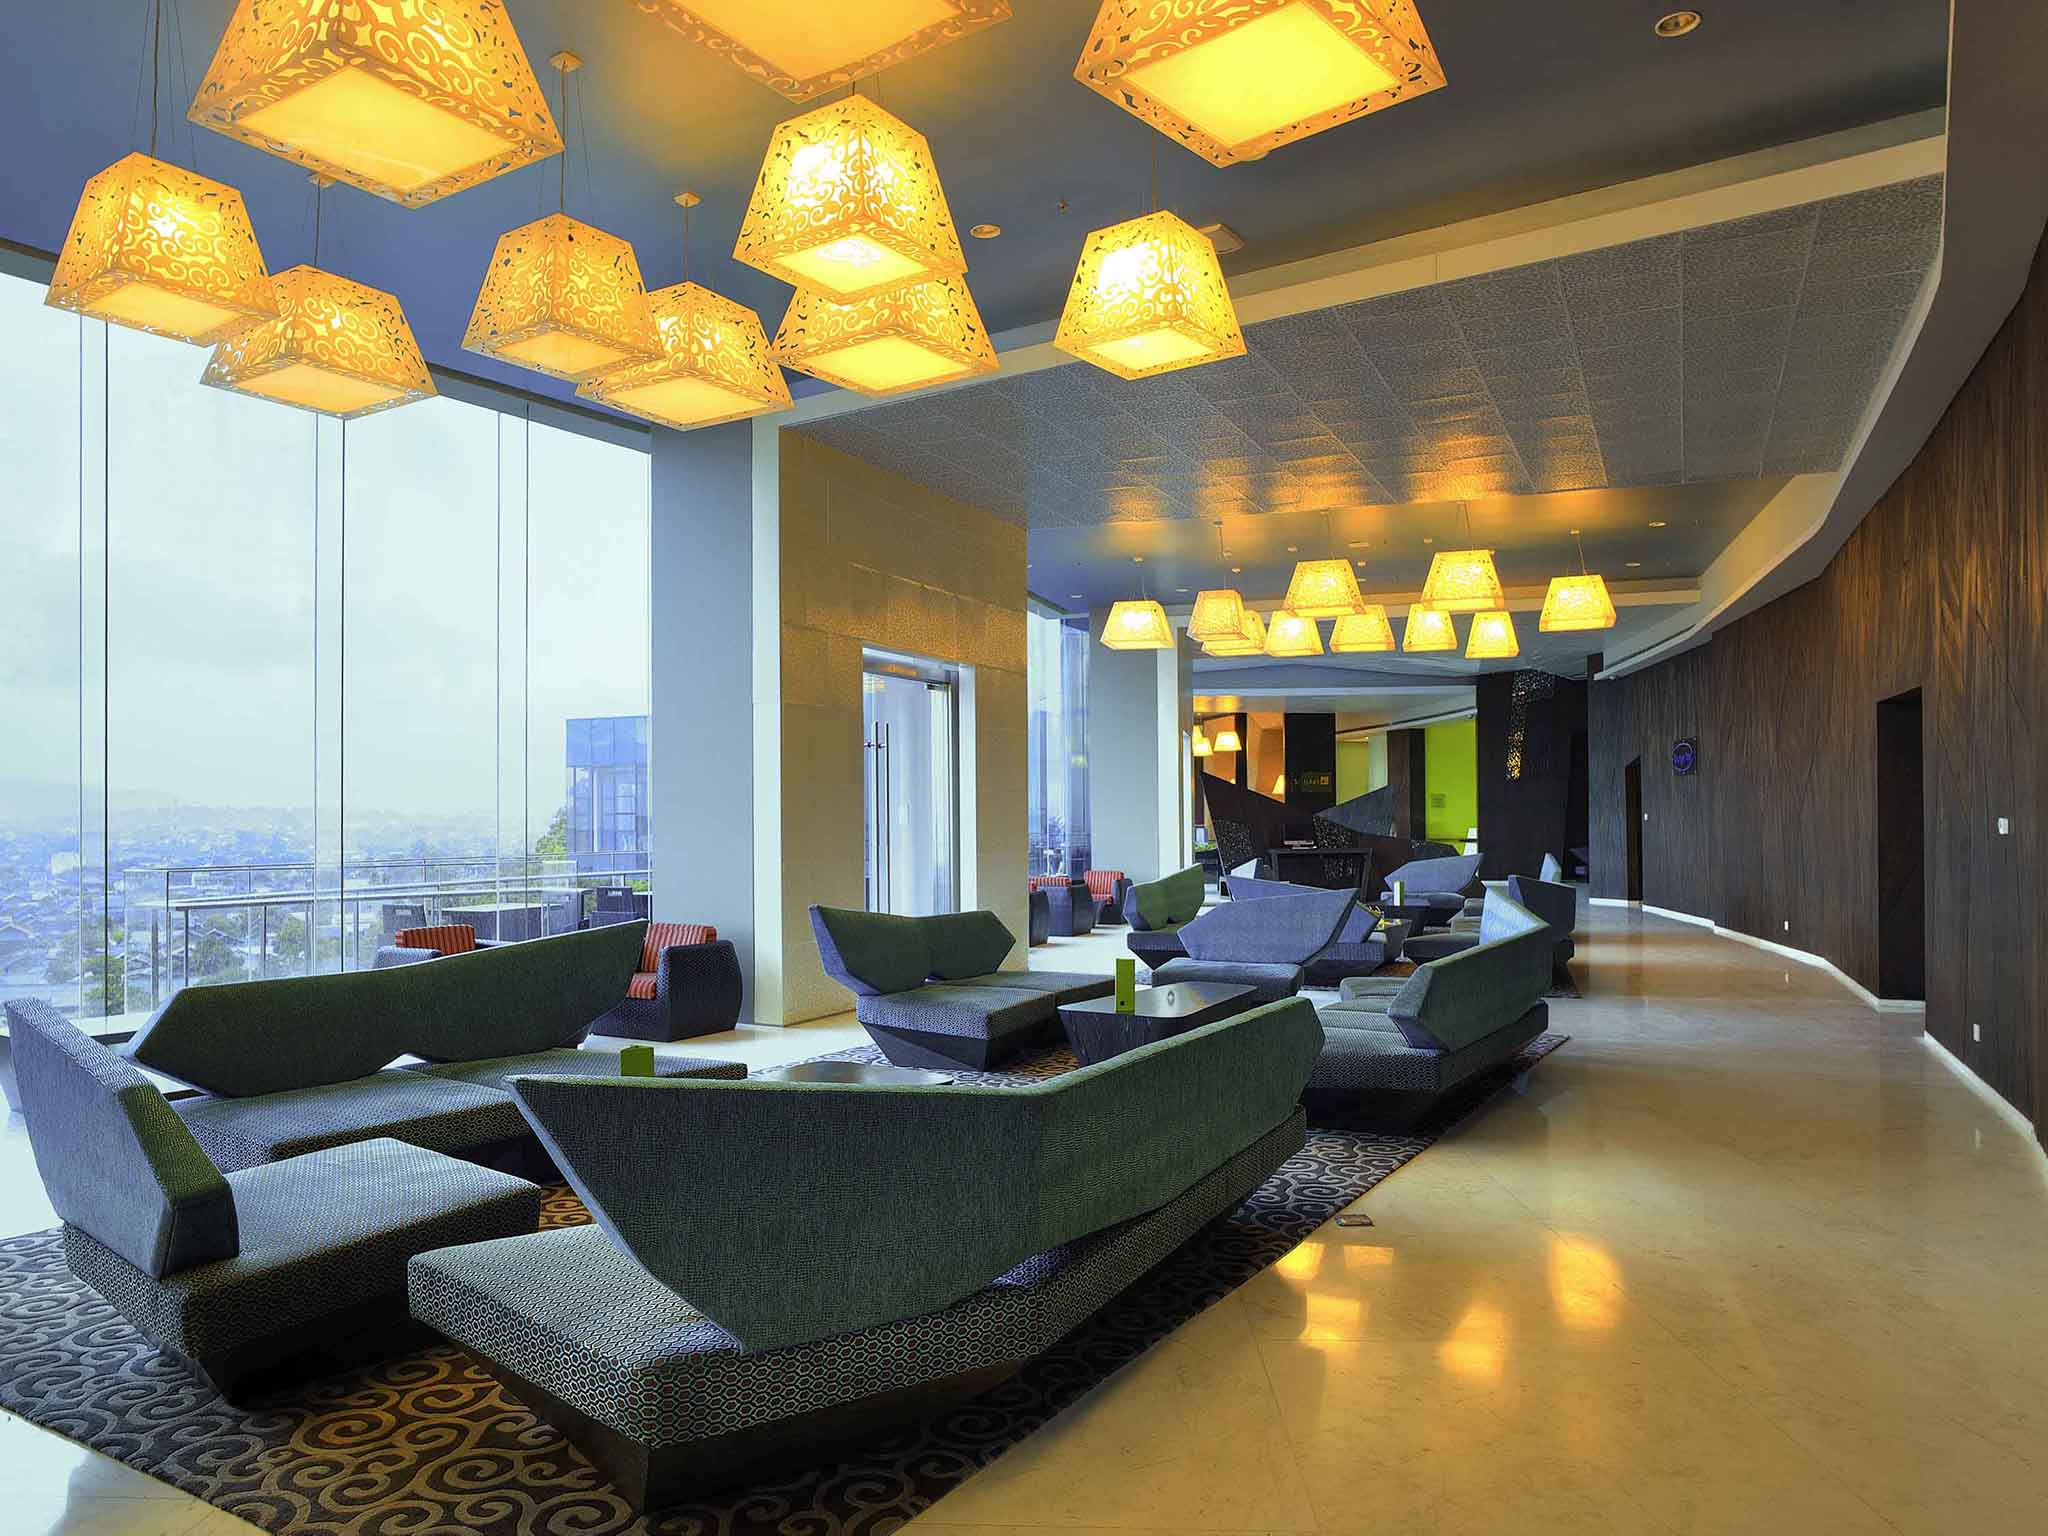 Lounge Bar & Ocean Light - Novotel Lampung